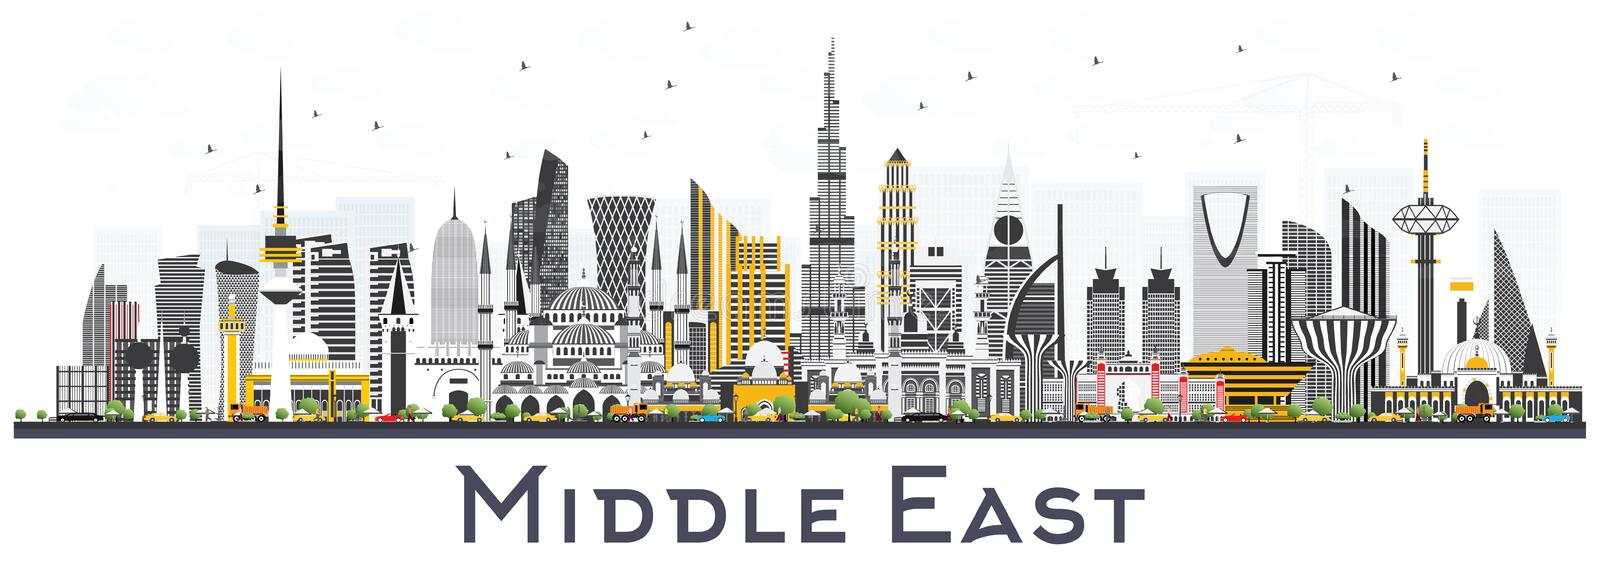 Middle East City Skyline with Color Buildings Isolated on White. Vector Illustration. Business Travel and Tourism Concept with Modern Architecture. Middle East royalty free illustration